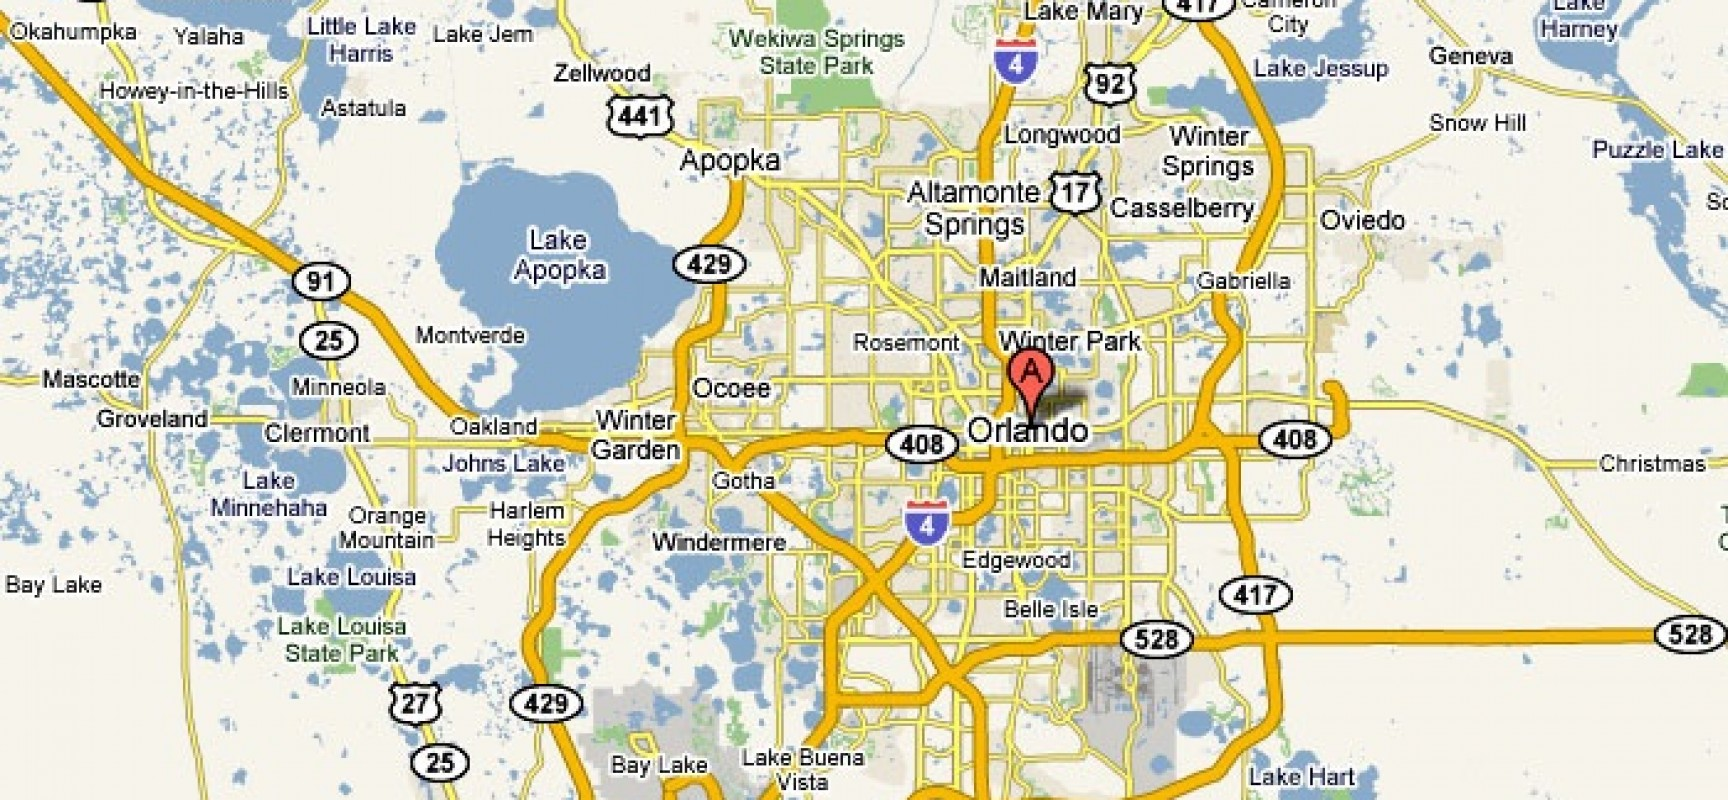 Orlando Florida USA – Orlando Florida Tourist Attractions Map